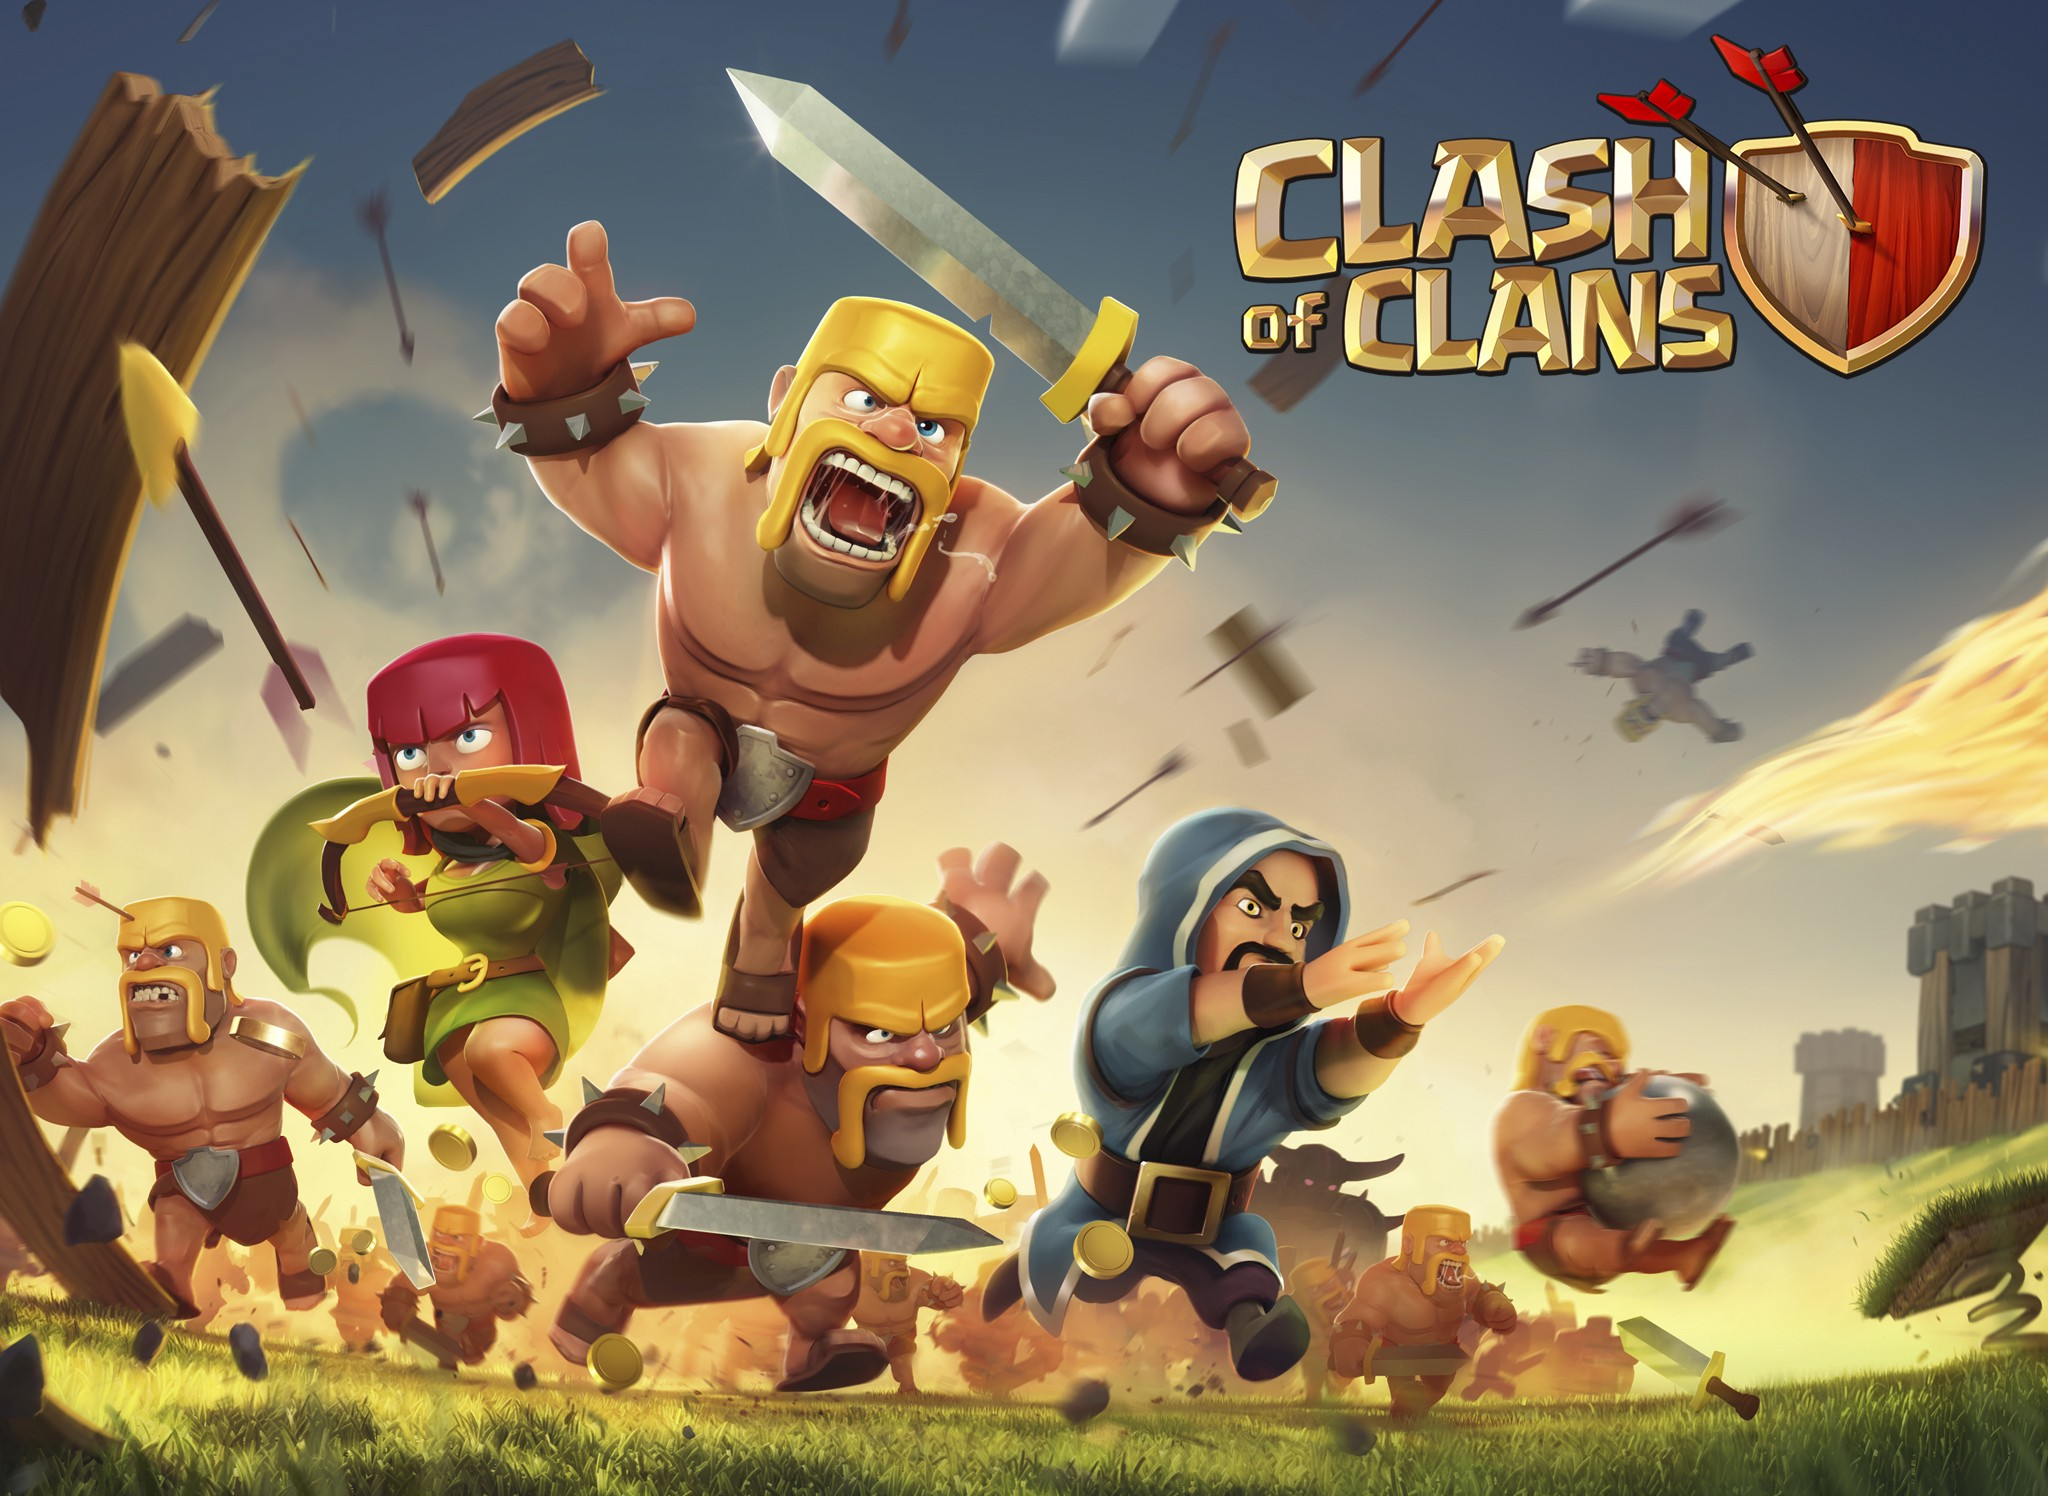 Clash of Clans and the death of companies that fail to build products  people love | by Matheus Riolfi | Medium